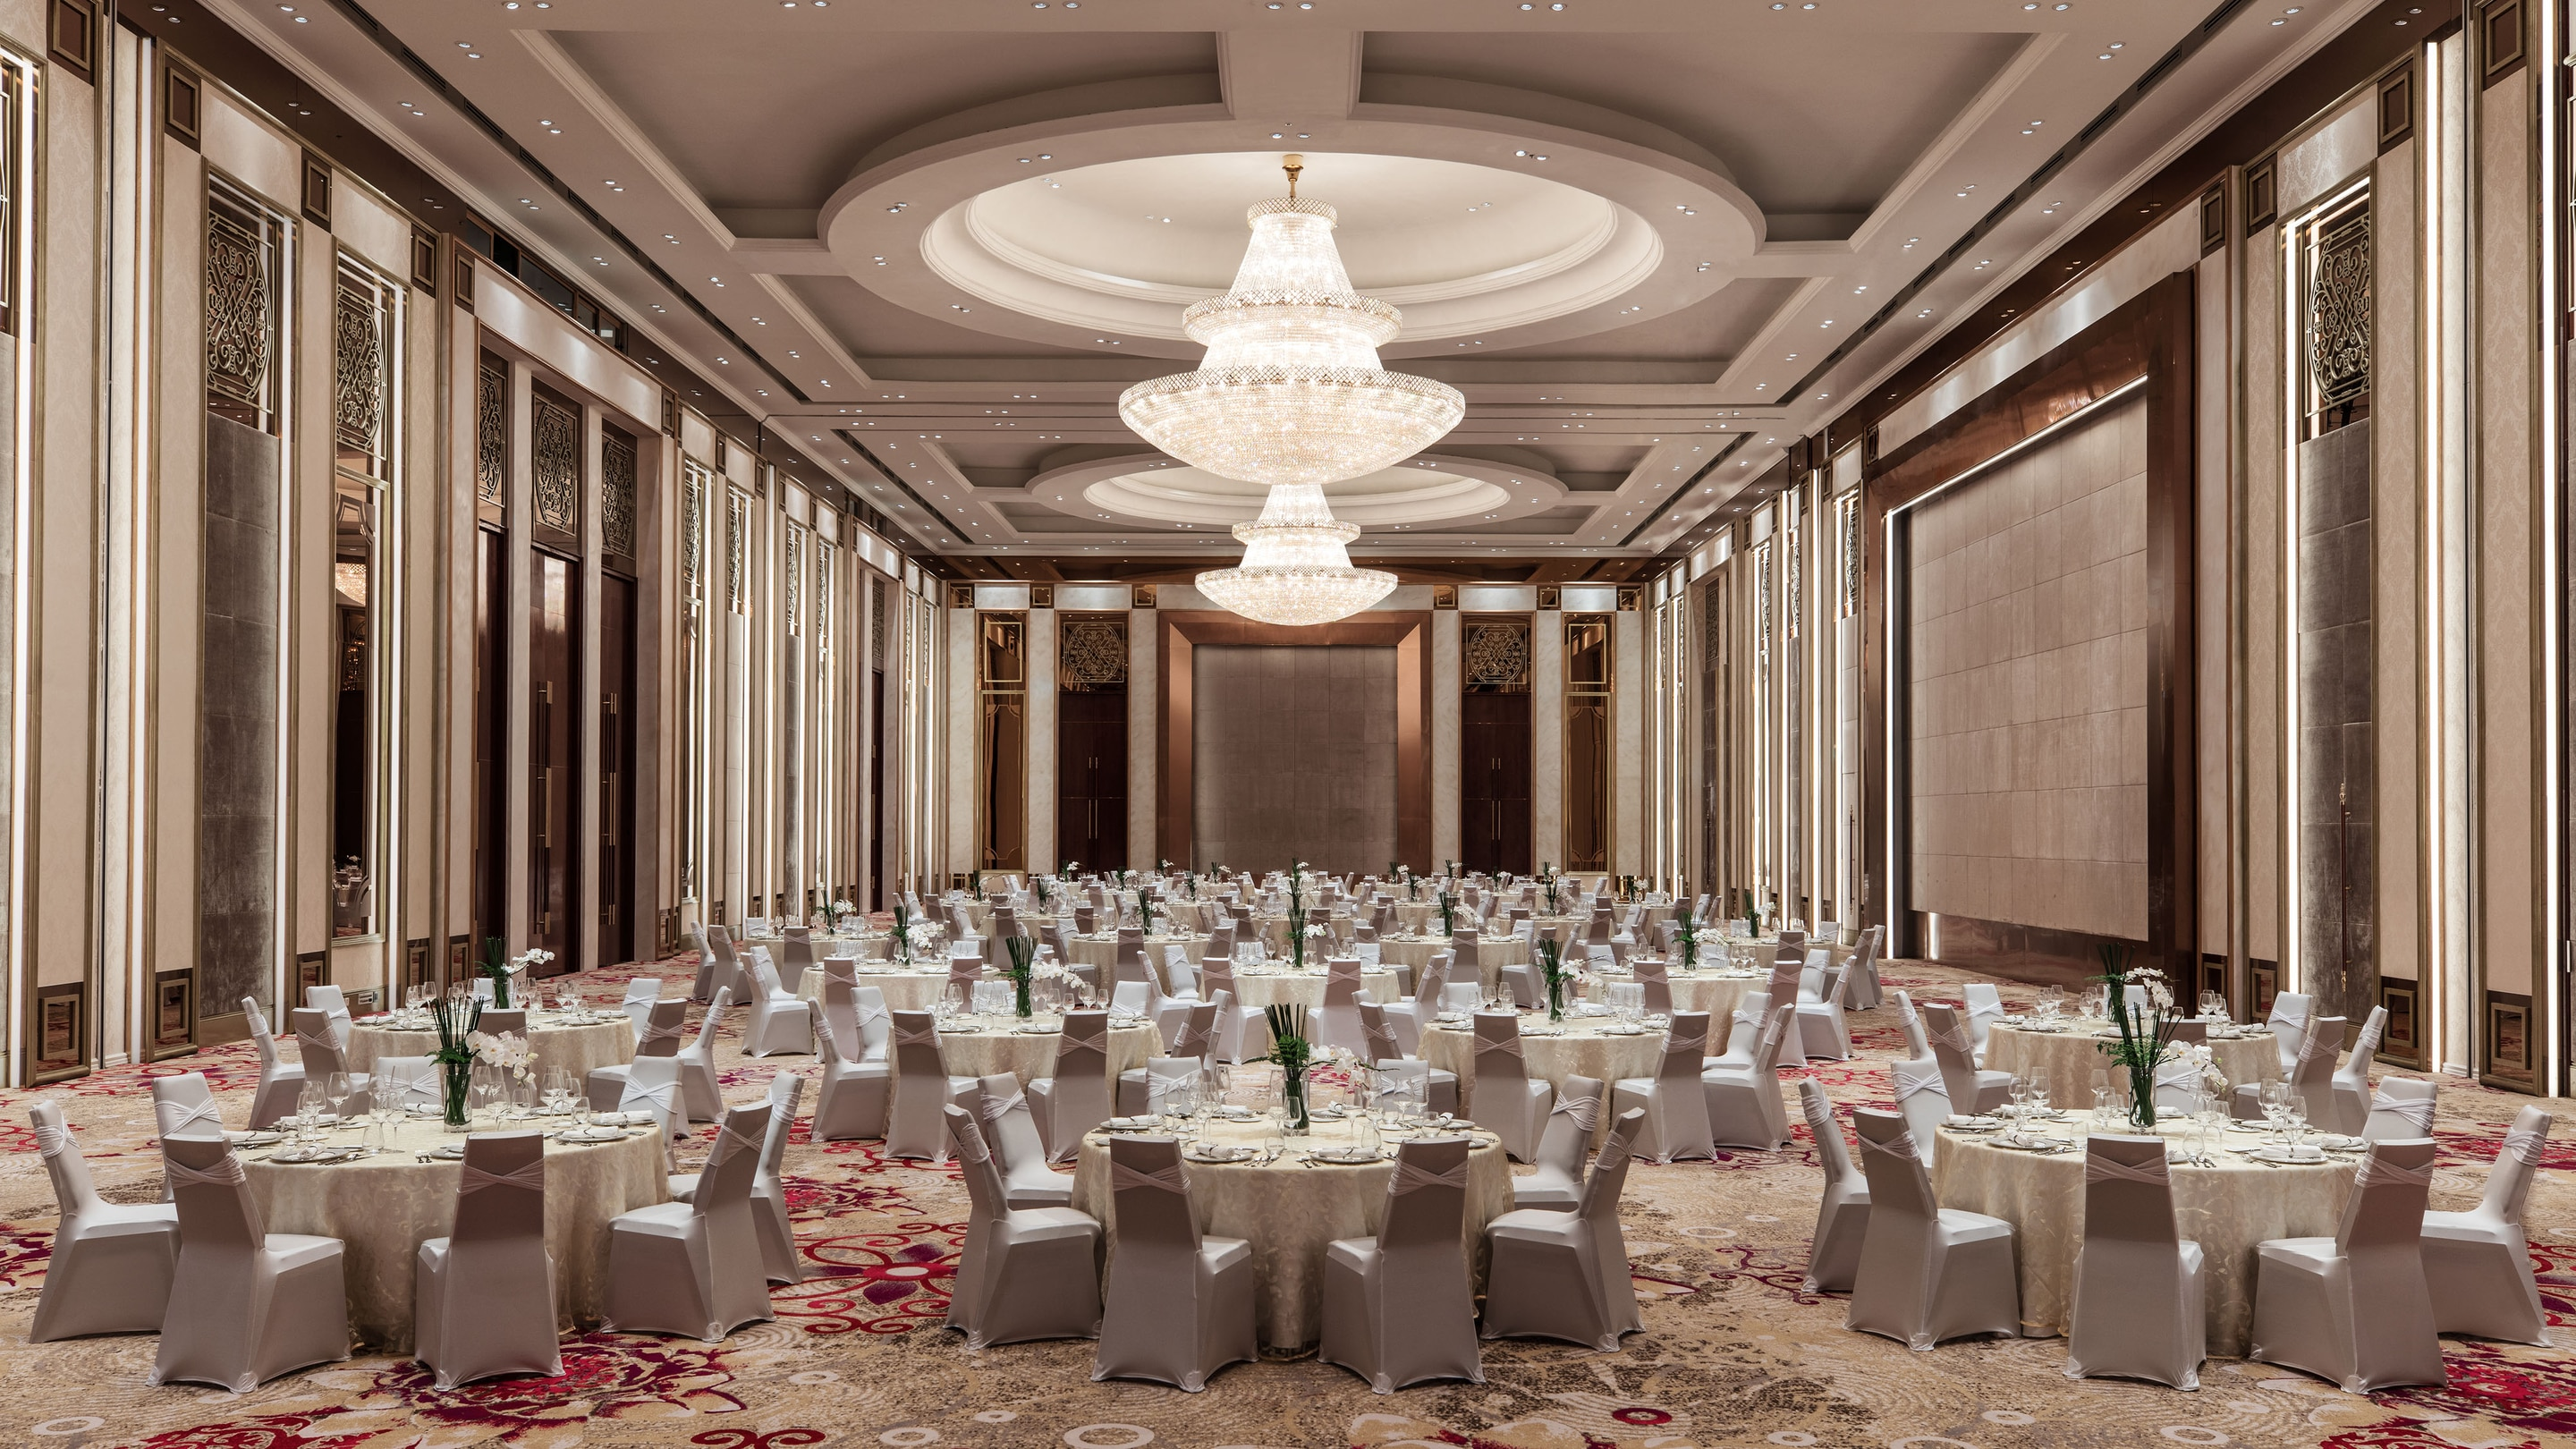 Grand Ballroom filled with table set for a formal dinner.